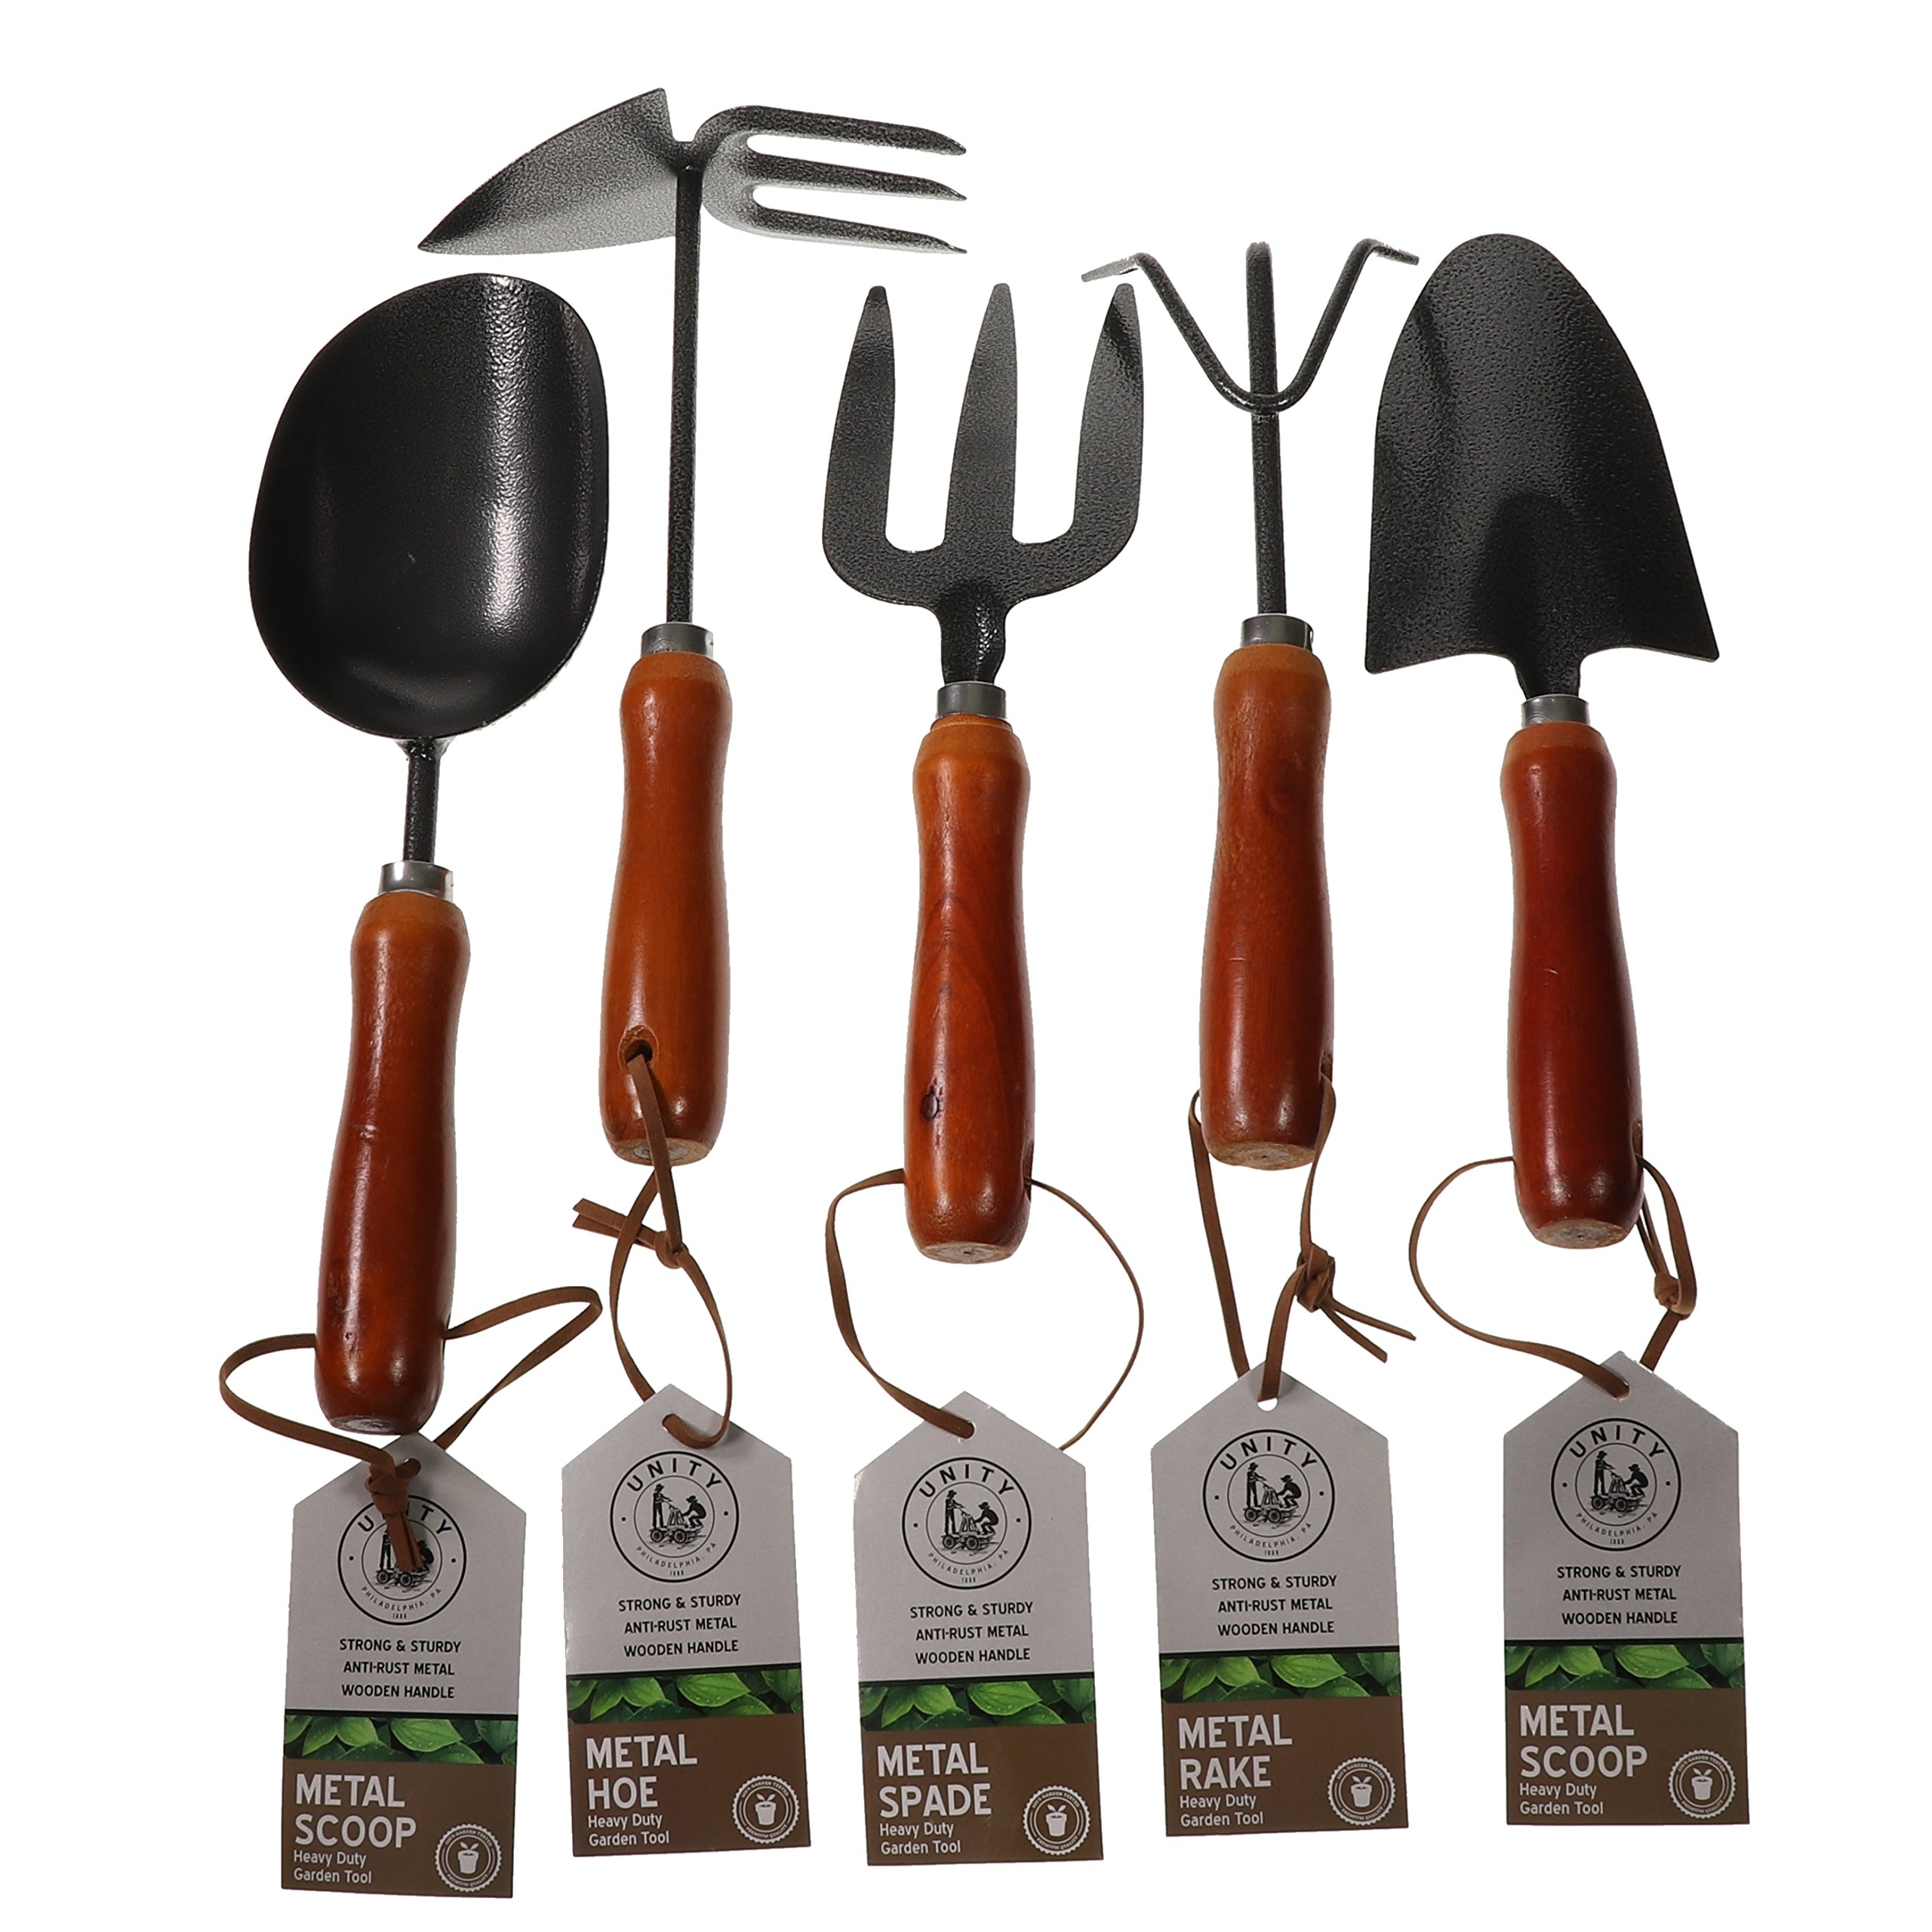 Unity 5-Piece Premium Medium Duty Garden Tool Set - Ergonomic Wooden Handles - Anti-Rust - Strong And Durable - Garden Tested by Unity-Frankford